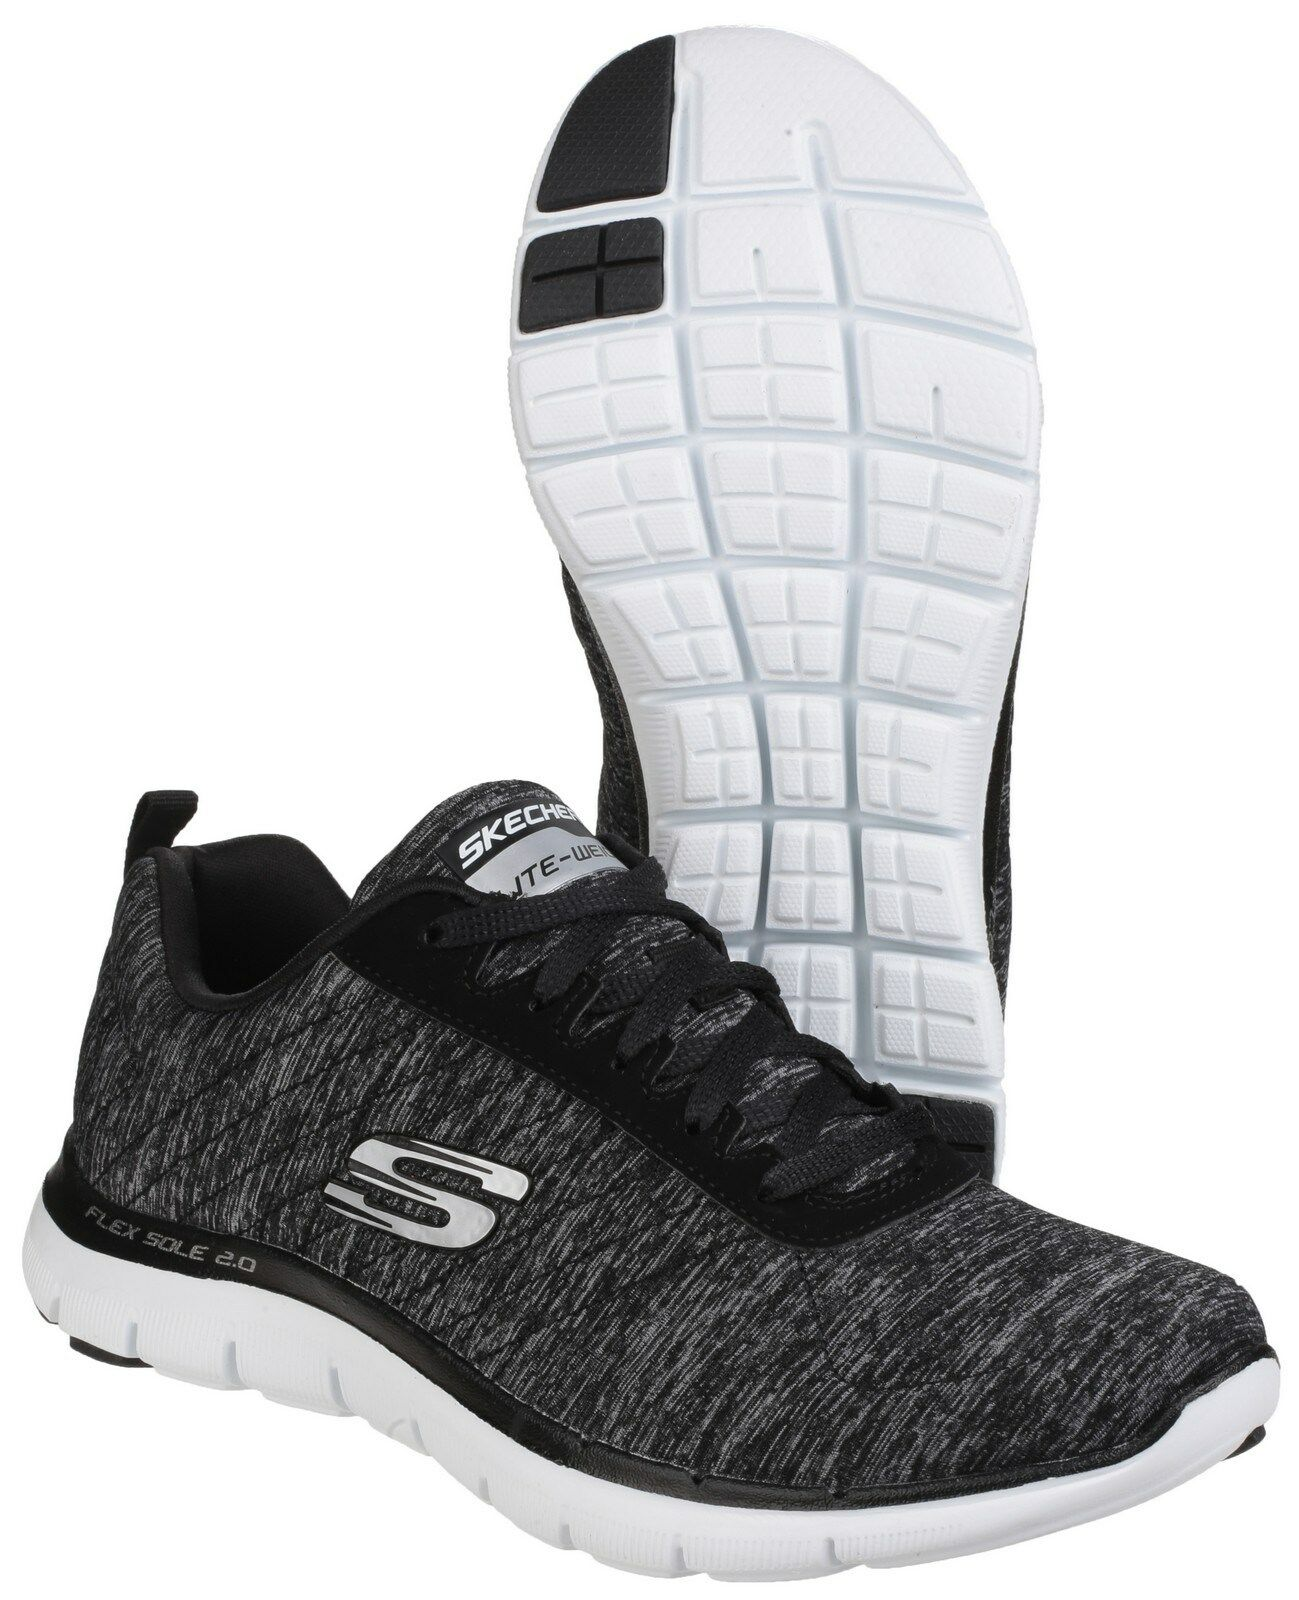 Skechers 2.0 Flex Appeal 2.0 Skechers Damenschuhe Sports Athletic Workout Trainers Schuhes UK3-8 4bb62e